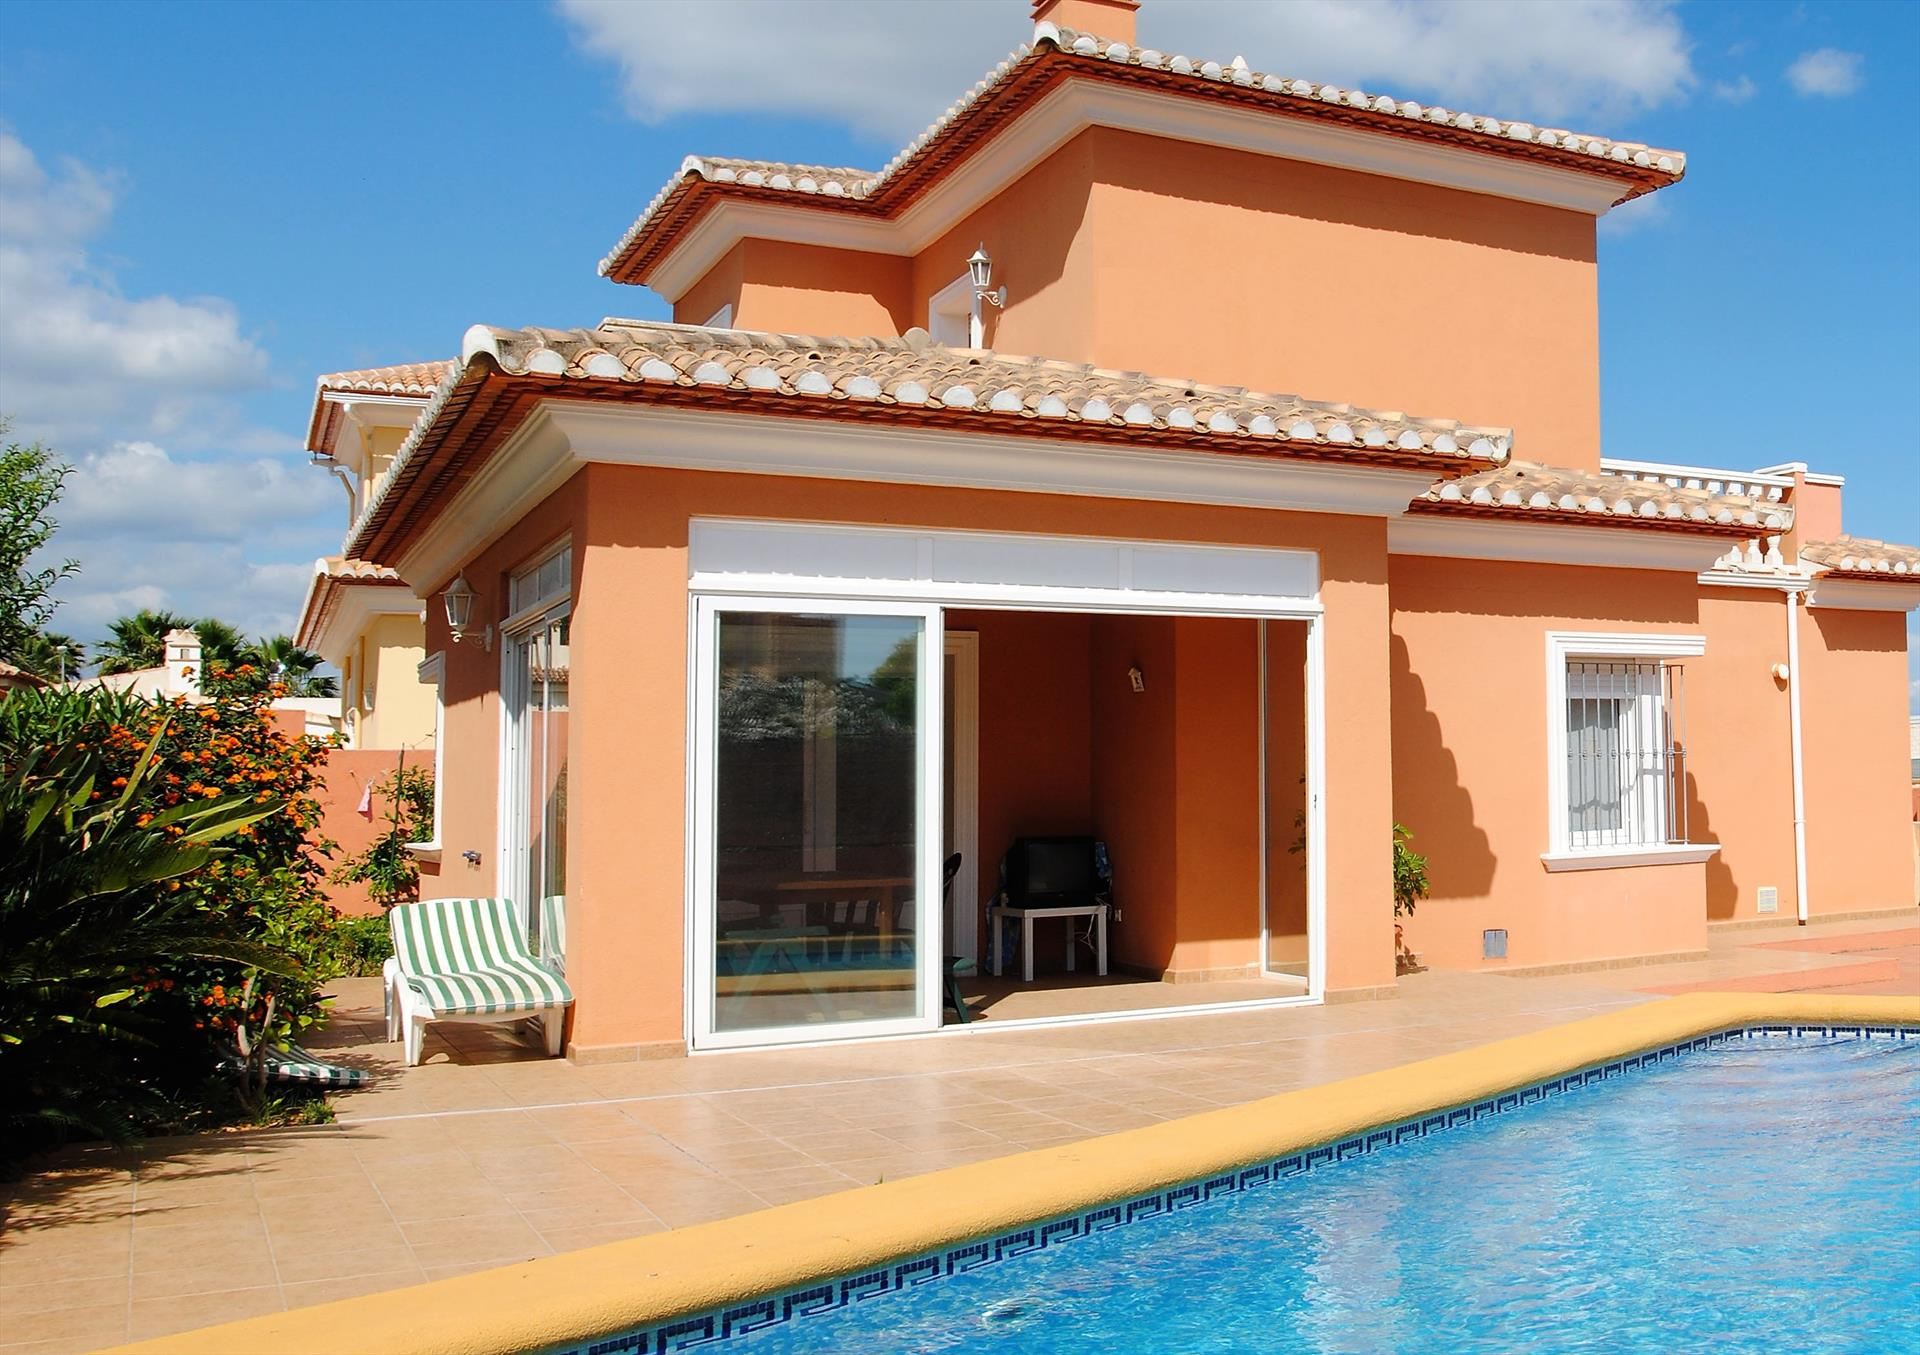 CH3208, Large and comfortable holiday house in Denia, on the Costa Blanca, Spain  with private pool for 6 persons.....